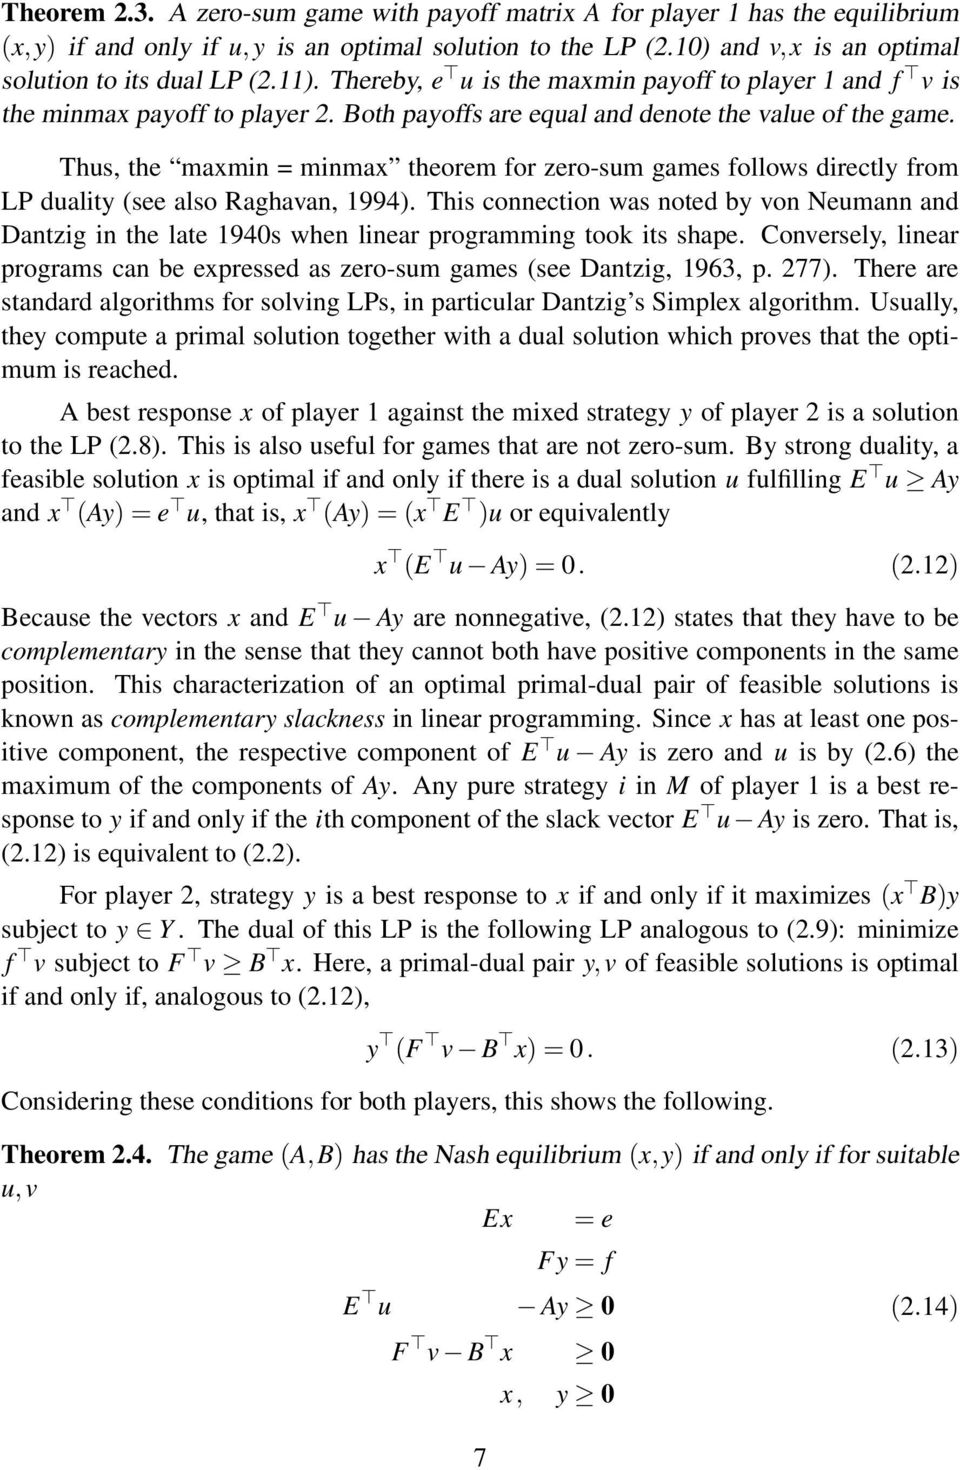 Thus, the maxmin = minmax theorem for zero-sum games follows directly from LP duality (see also Raghavan, 1994).